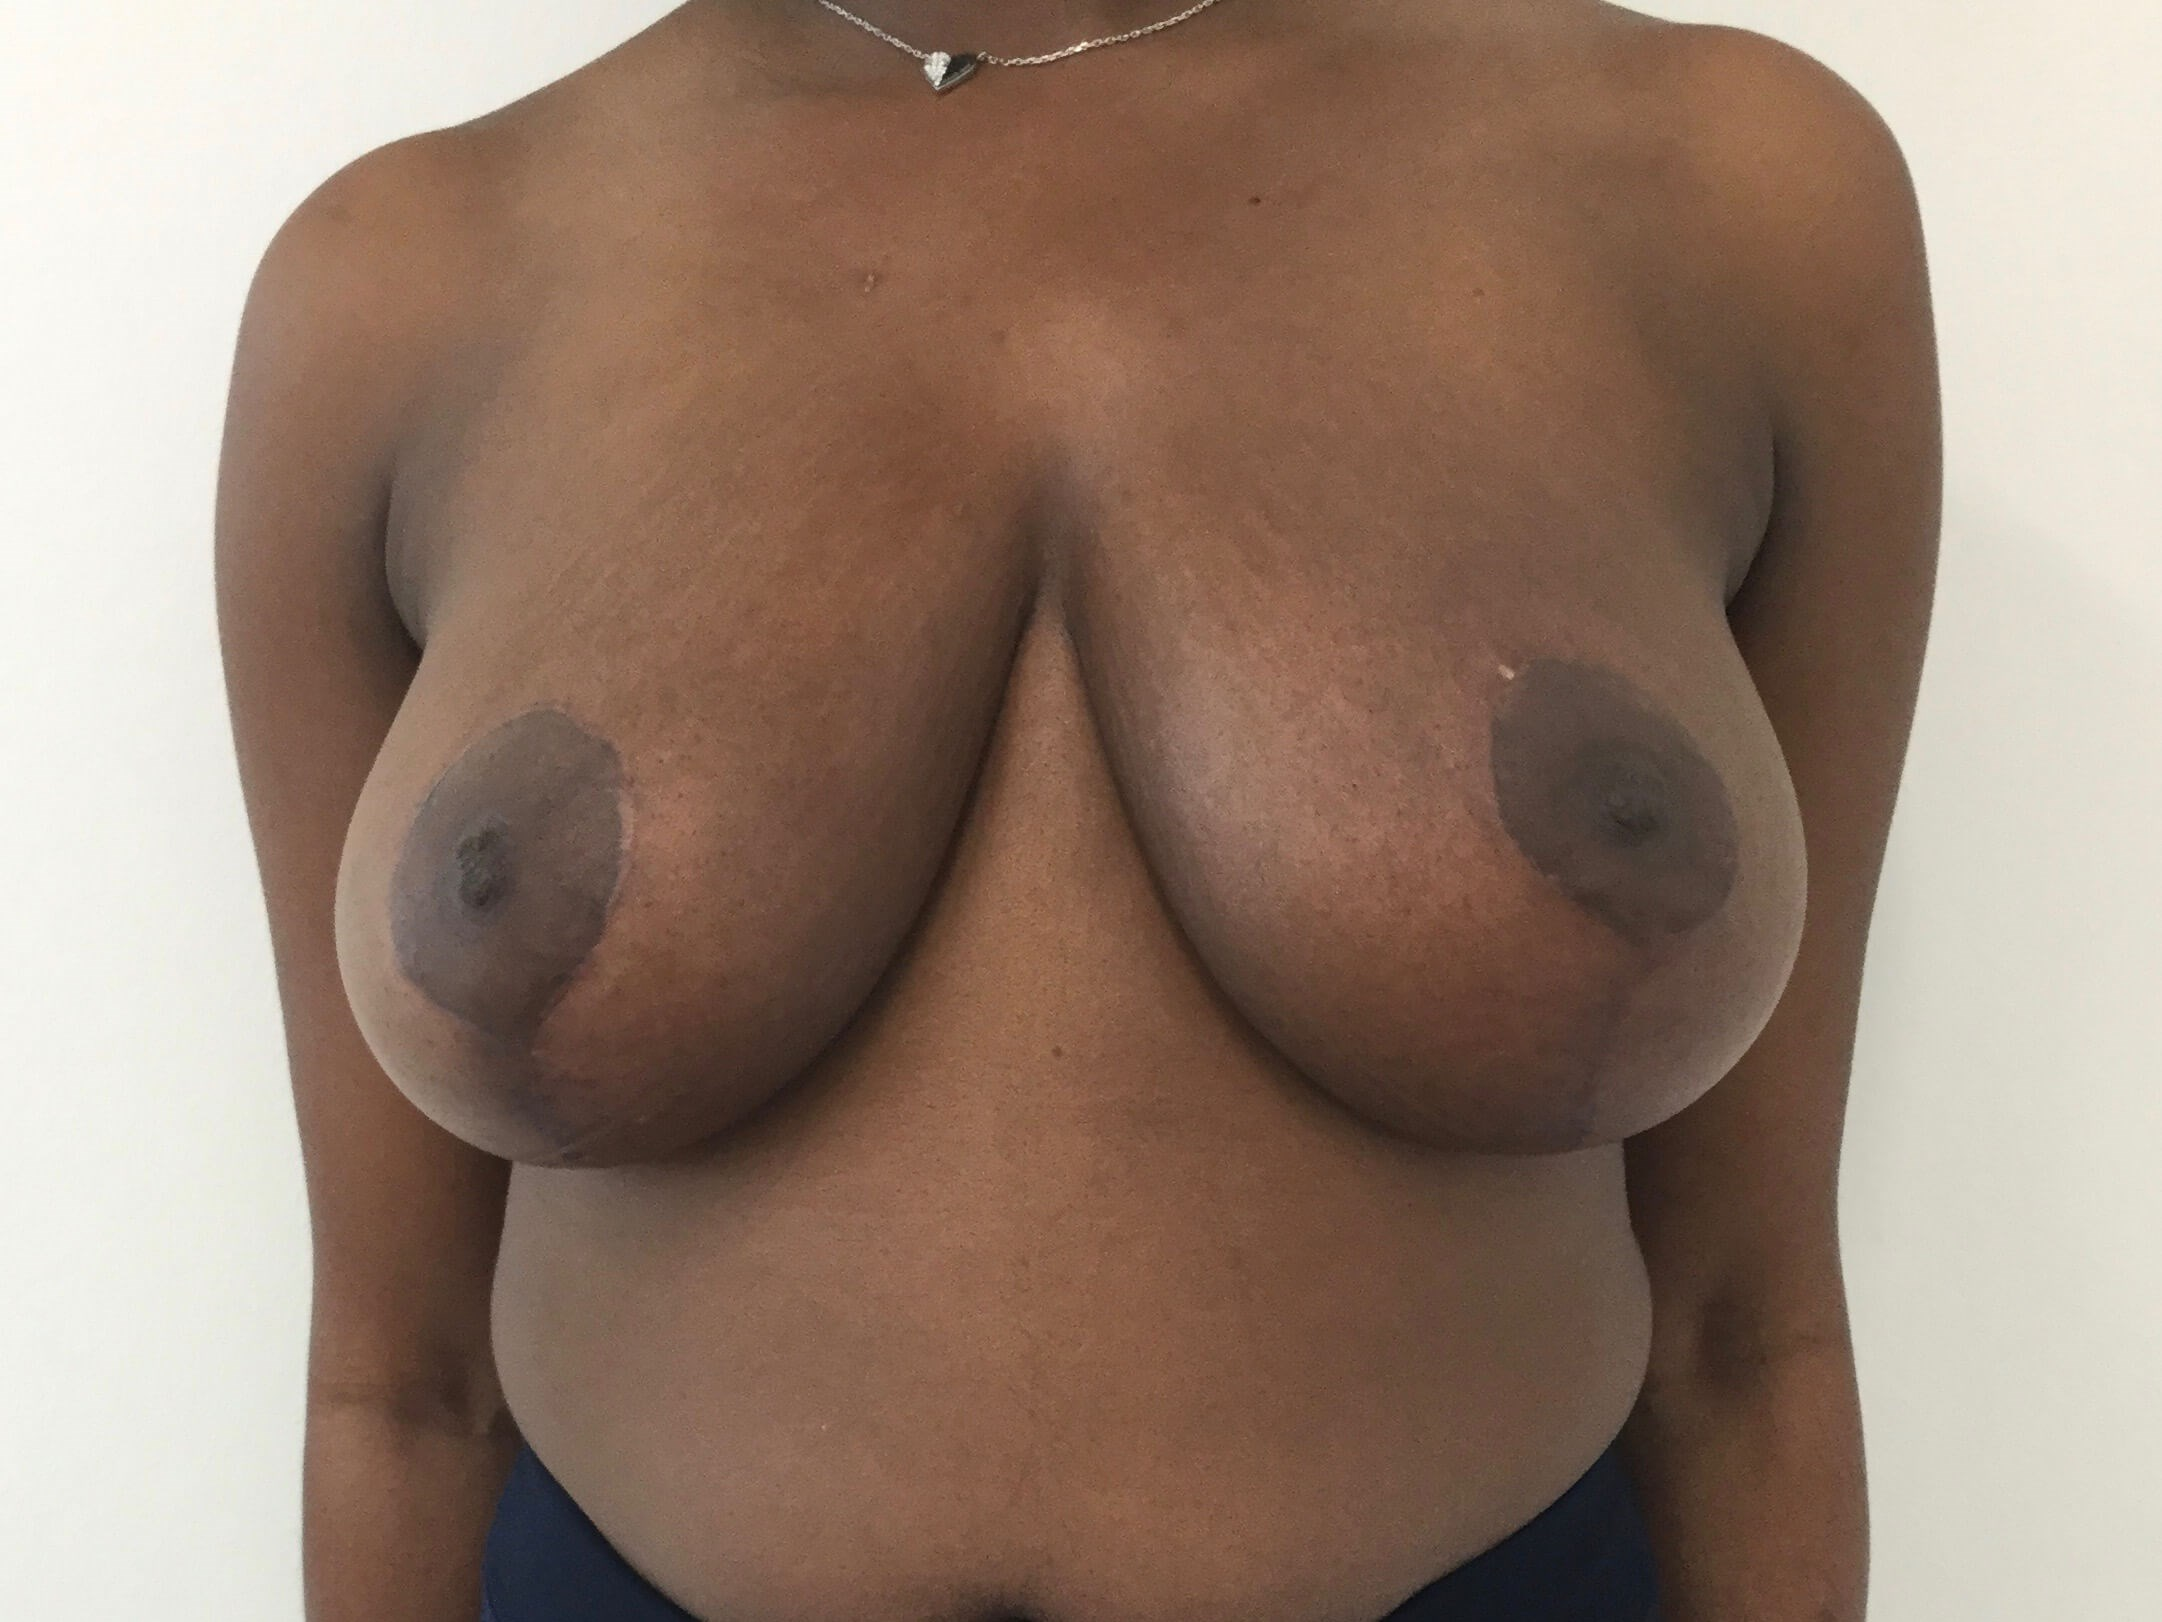 DALLAS WOMAN HAS BREAST REDUCTION TO REDUCE BACK/NECK PAIN